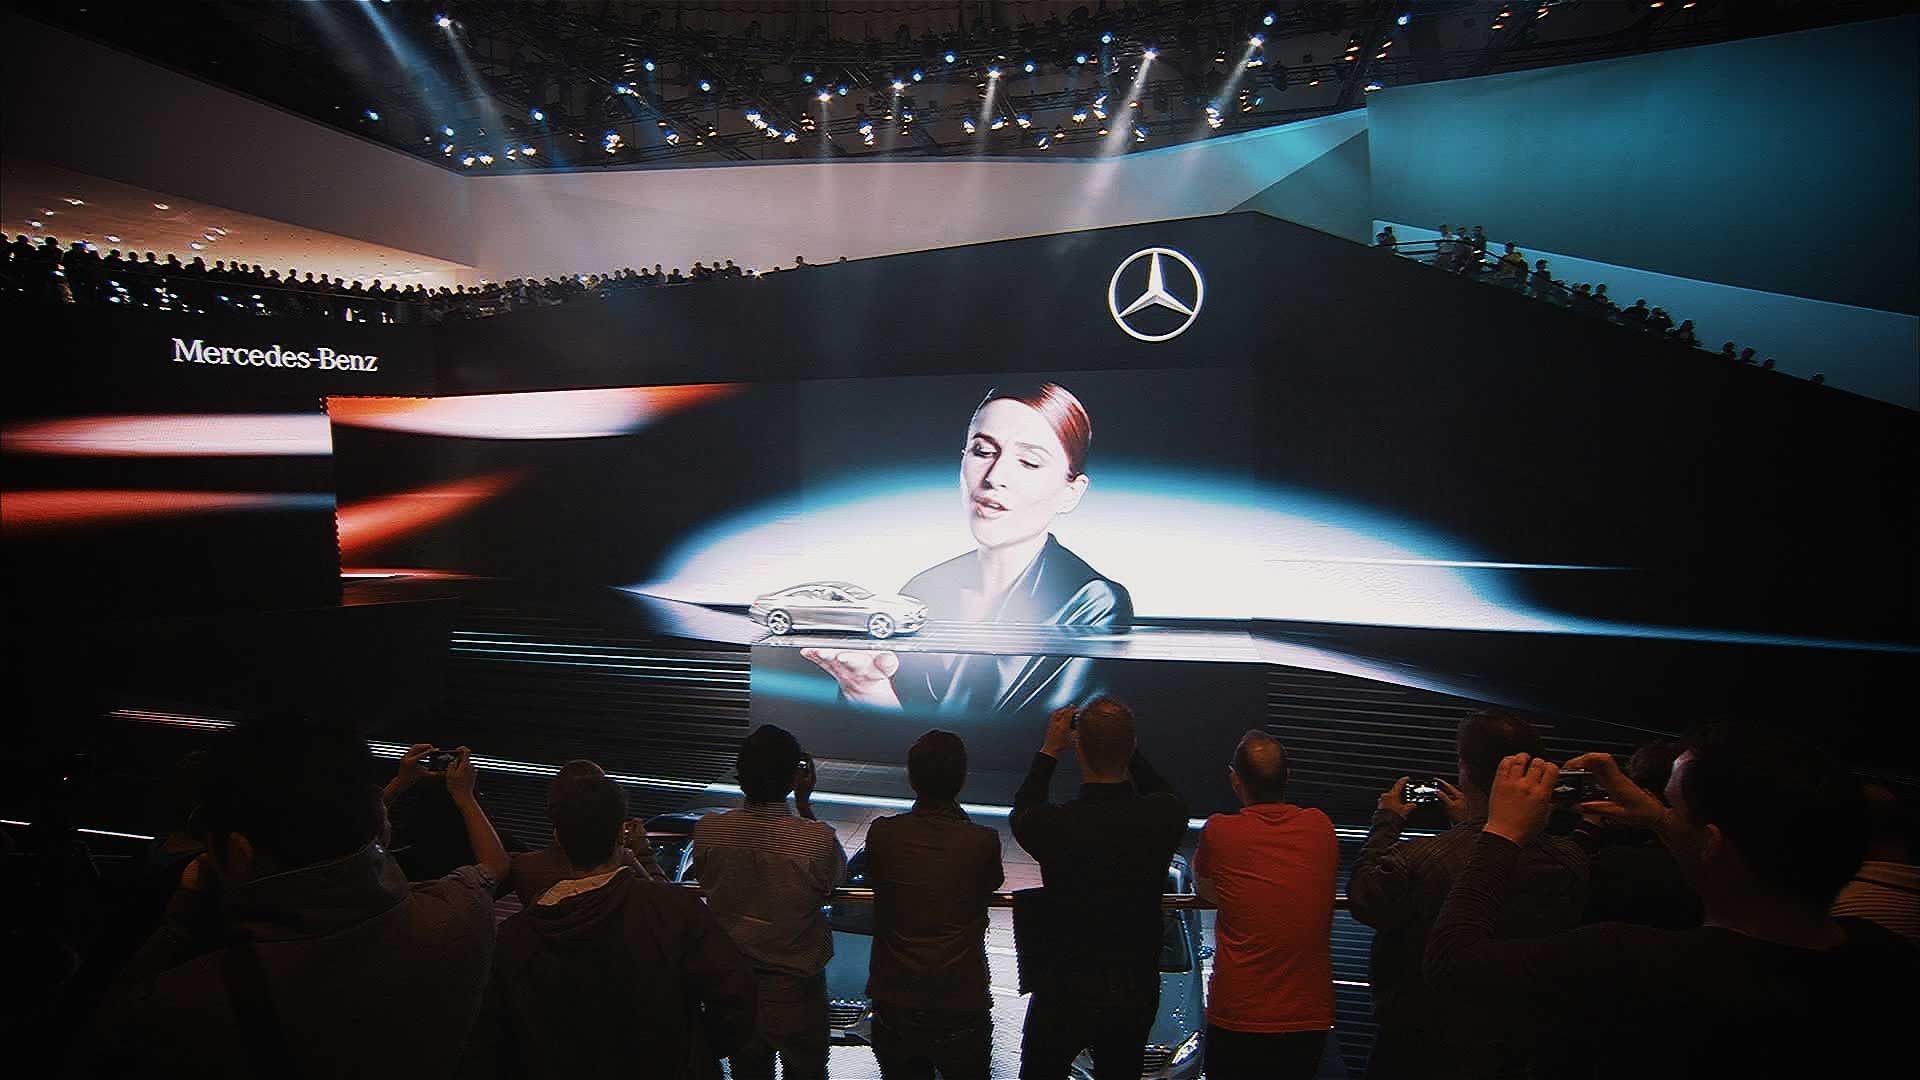 Live on stage. Mercedes-Benz IAA 2013 Trade Show